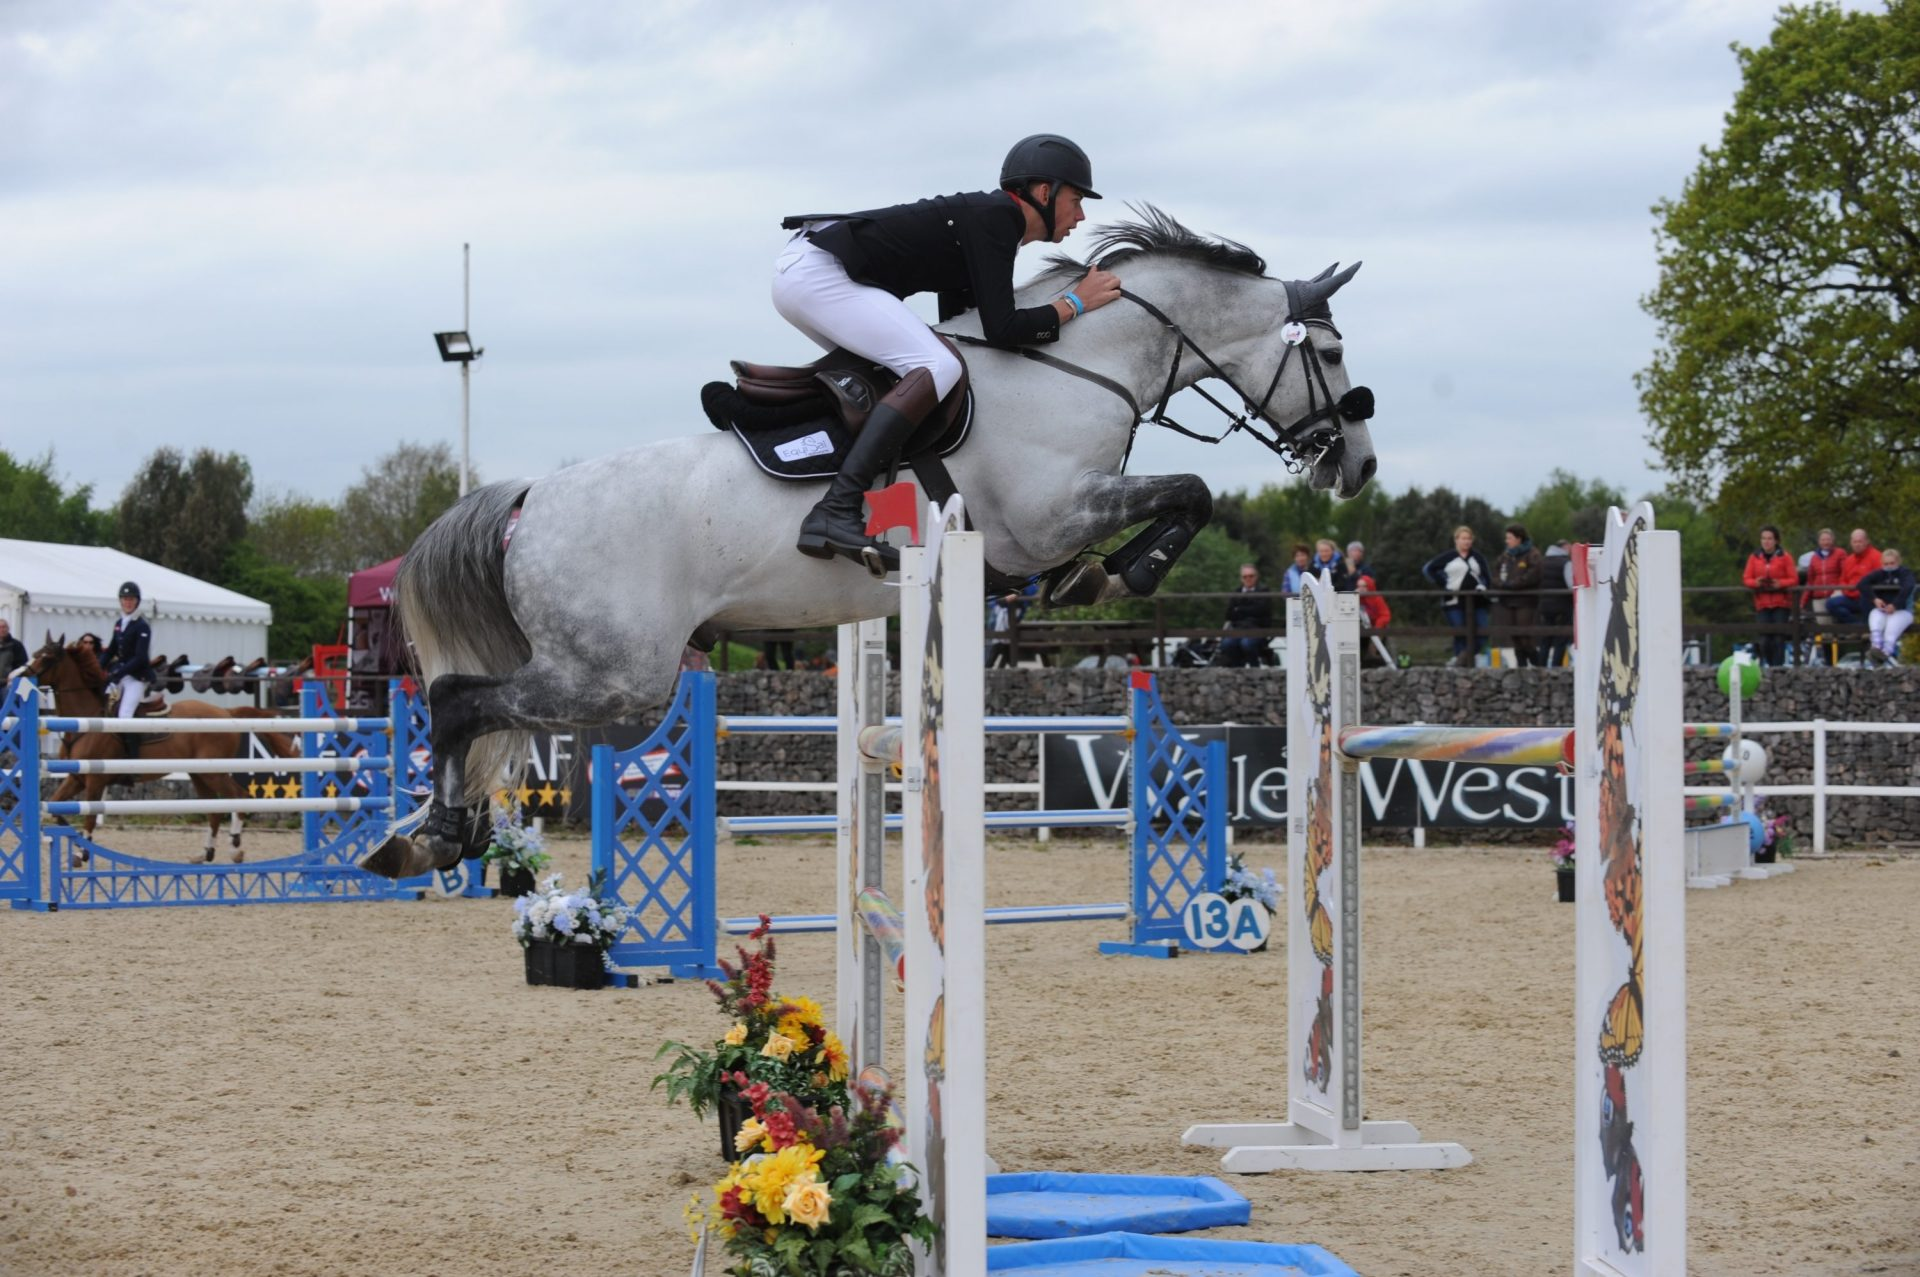 Man In Horse Jumping Competition